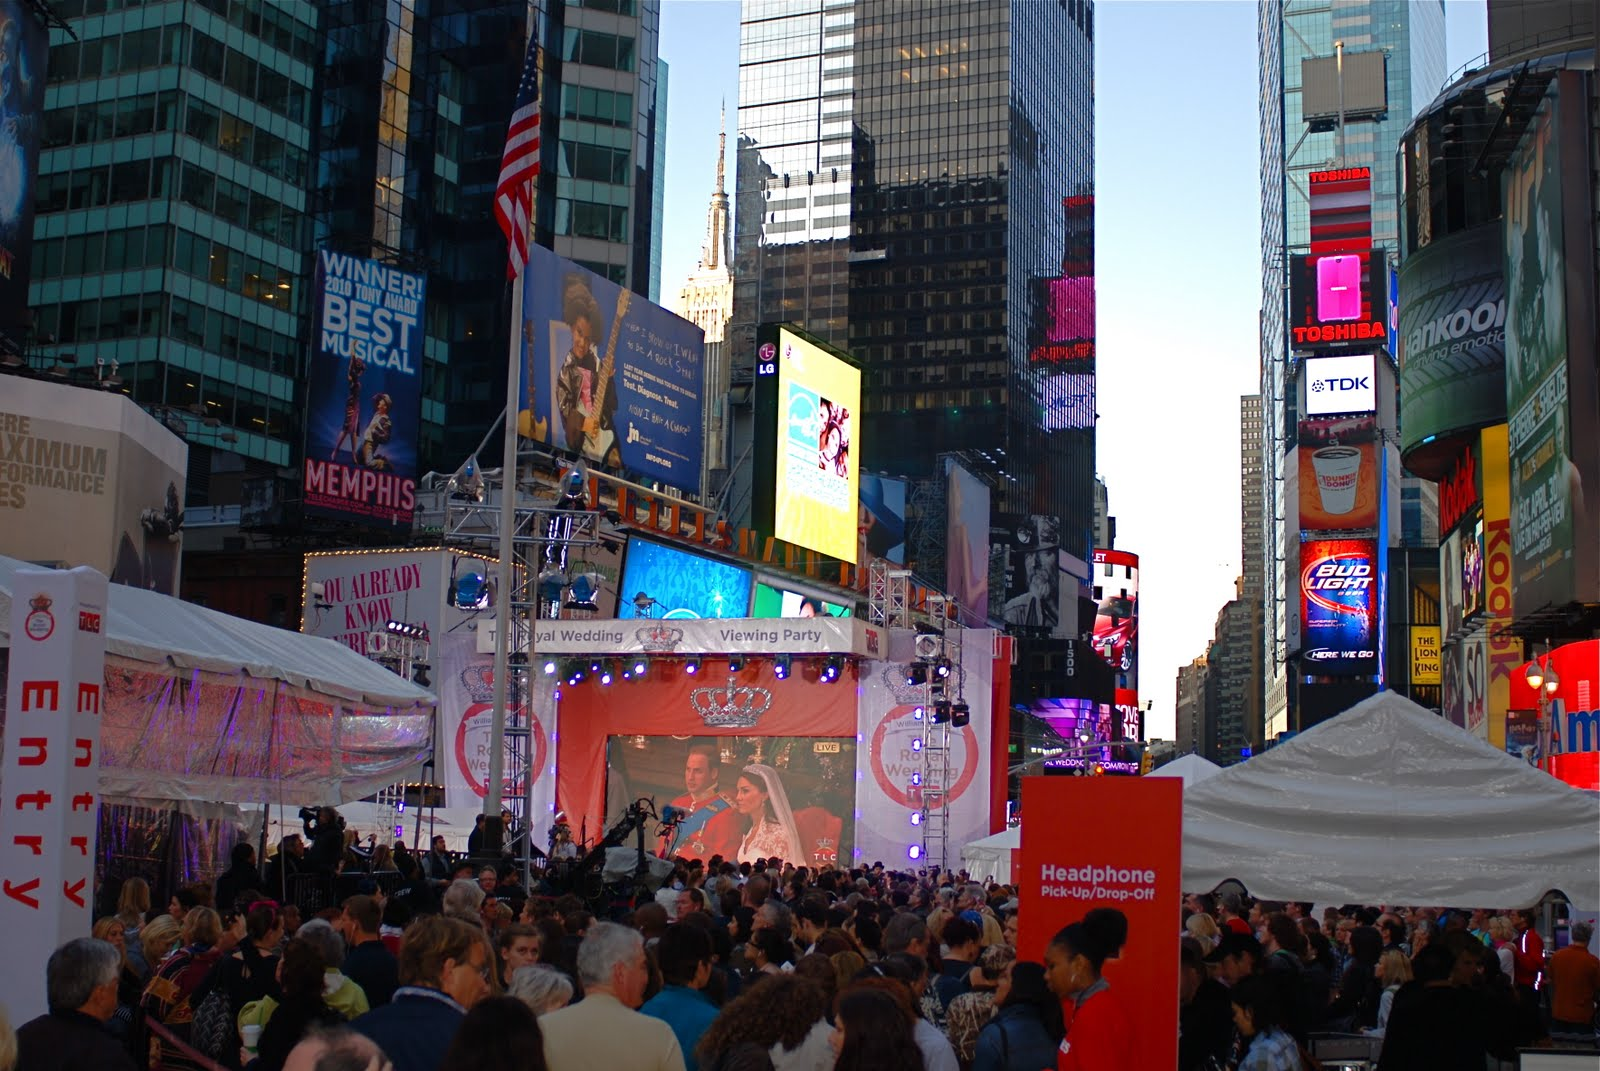 Royal Wedding Viewing Party In Times Square Hosted By Tlc